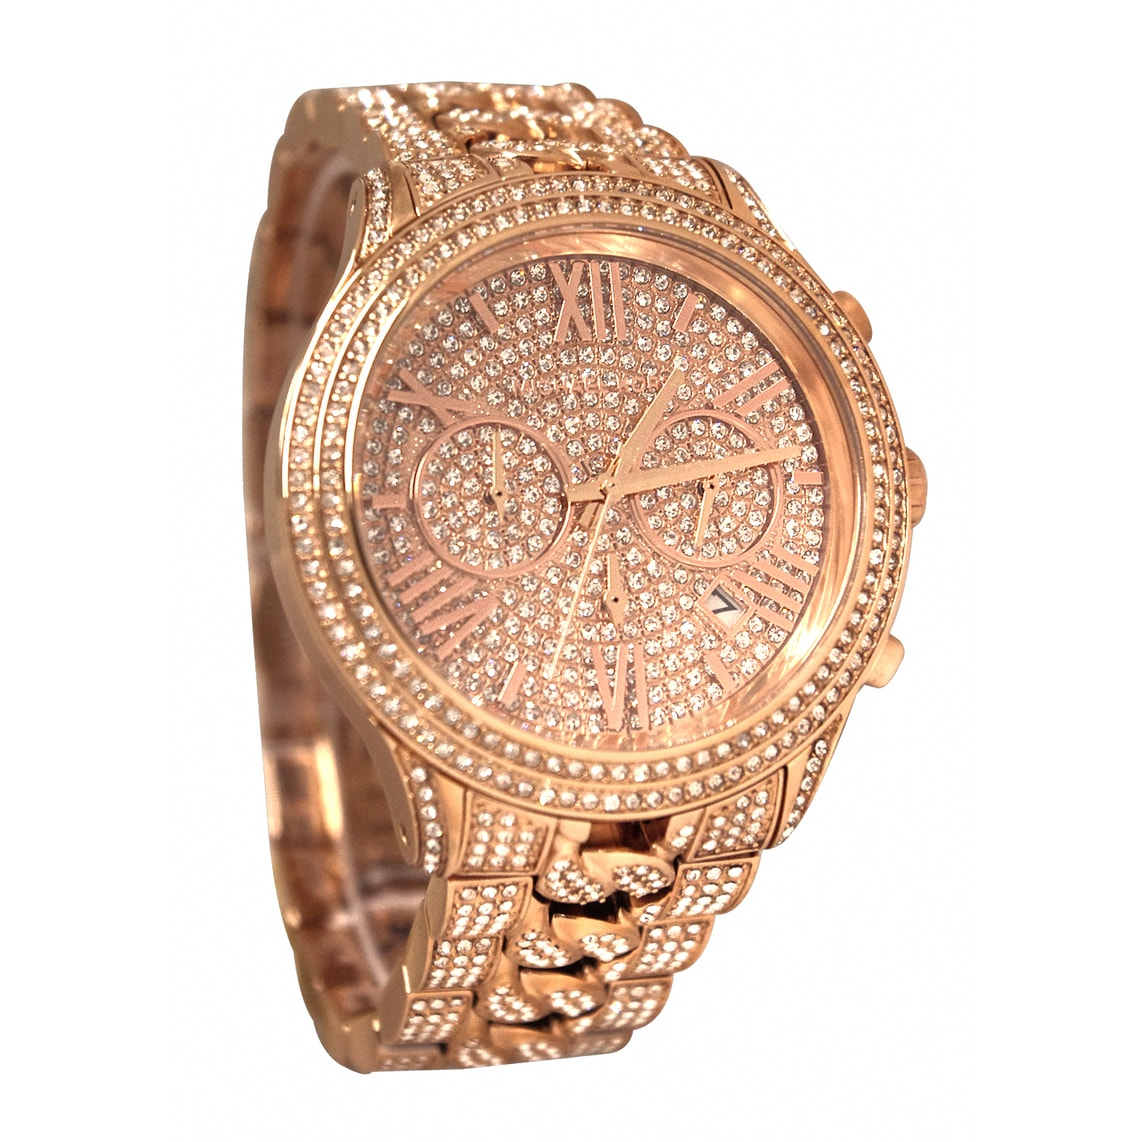 d6fae23b0c3c Shop Michael Kors Women s MK5900 Lindley Goldtone Stainless Steel Glitz  Watch - Free Shipping Today - Overstock - 9206989